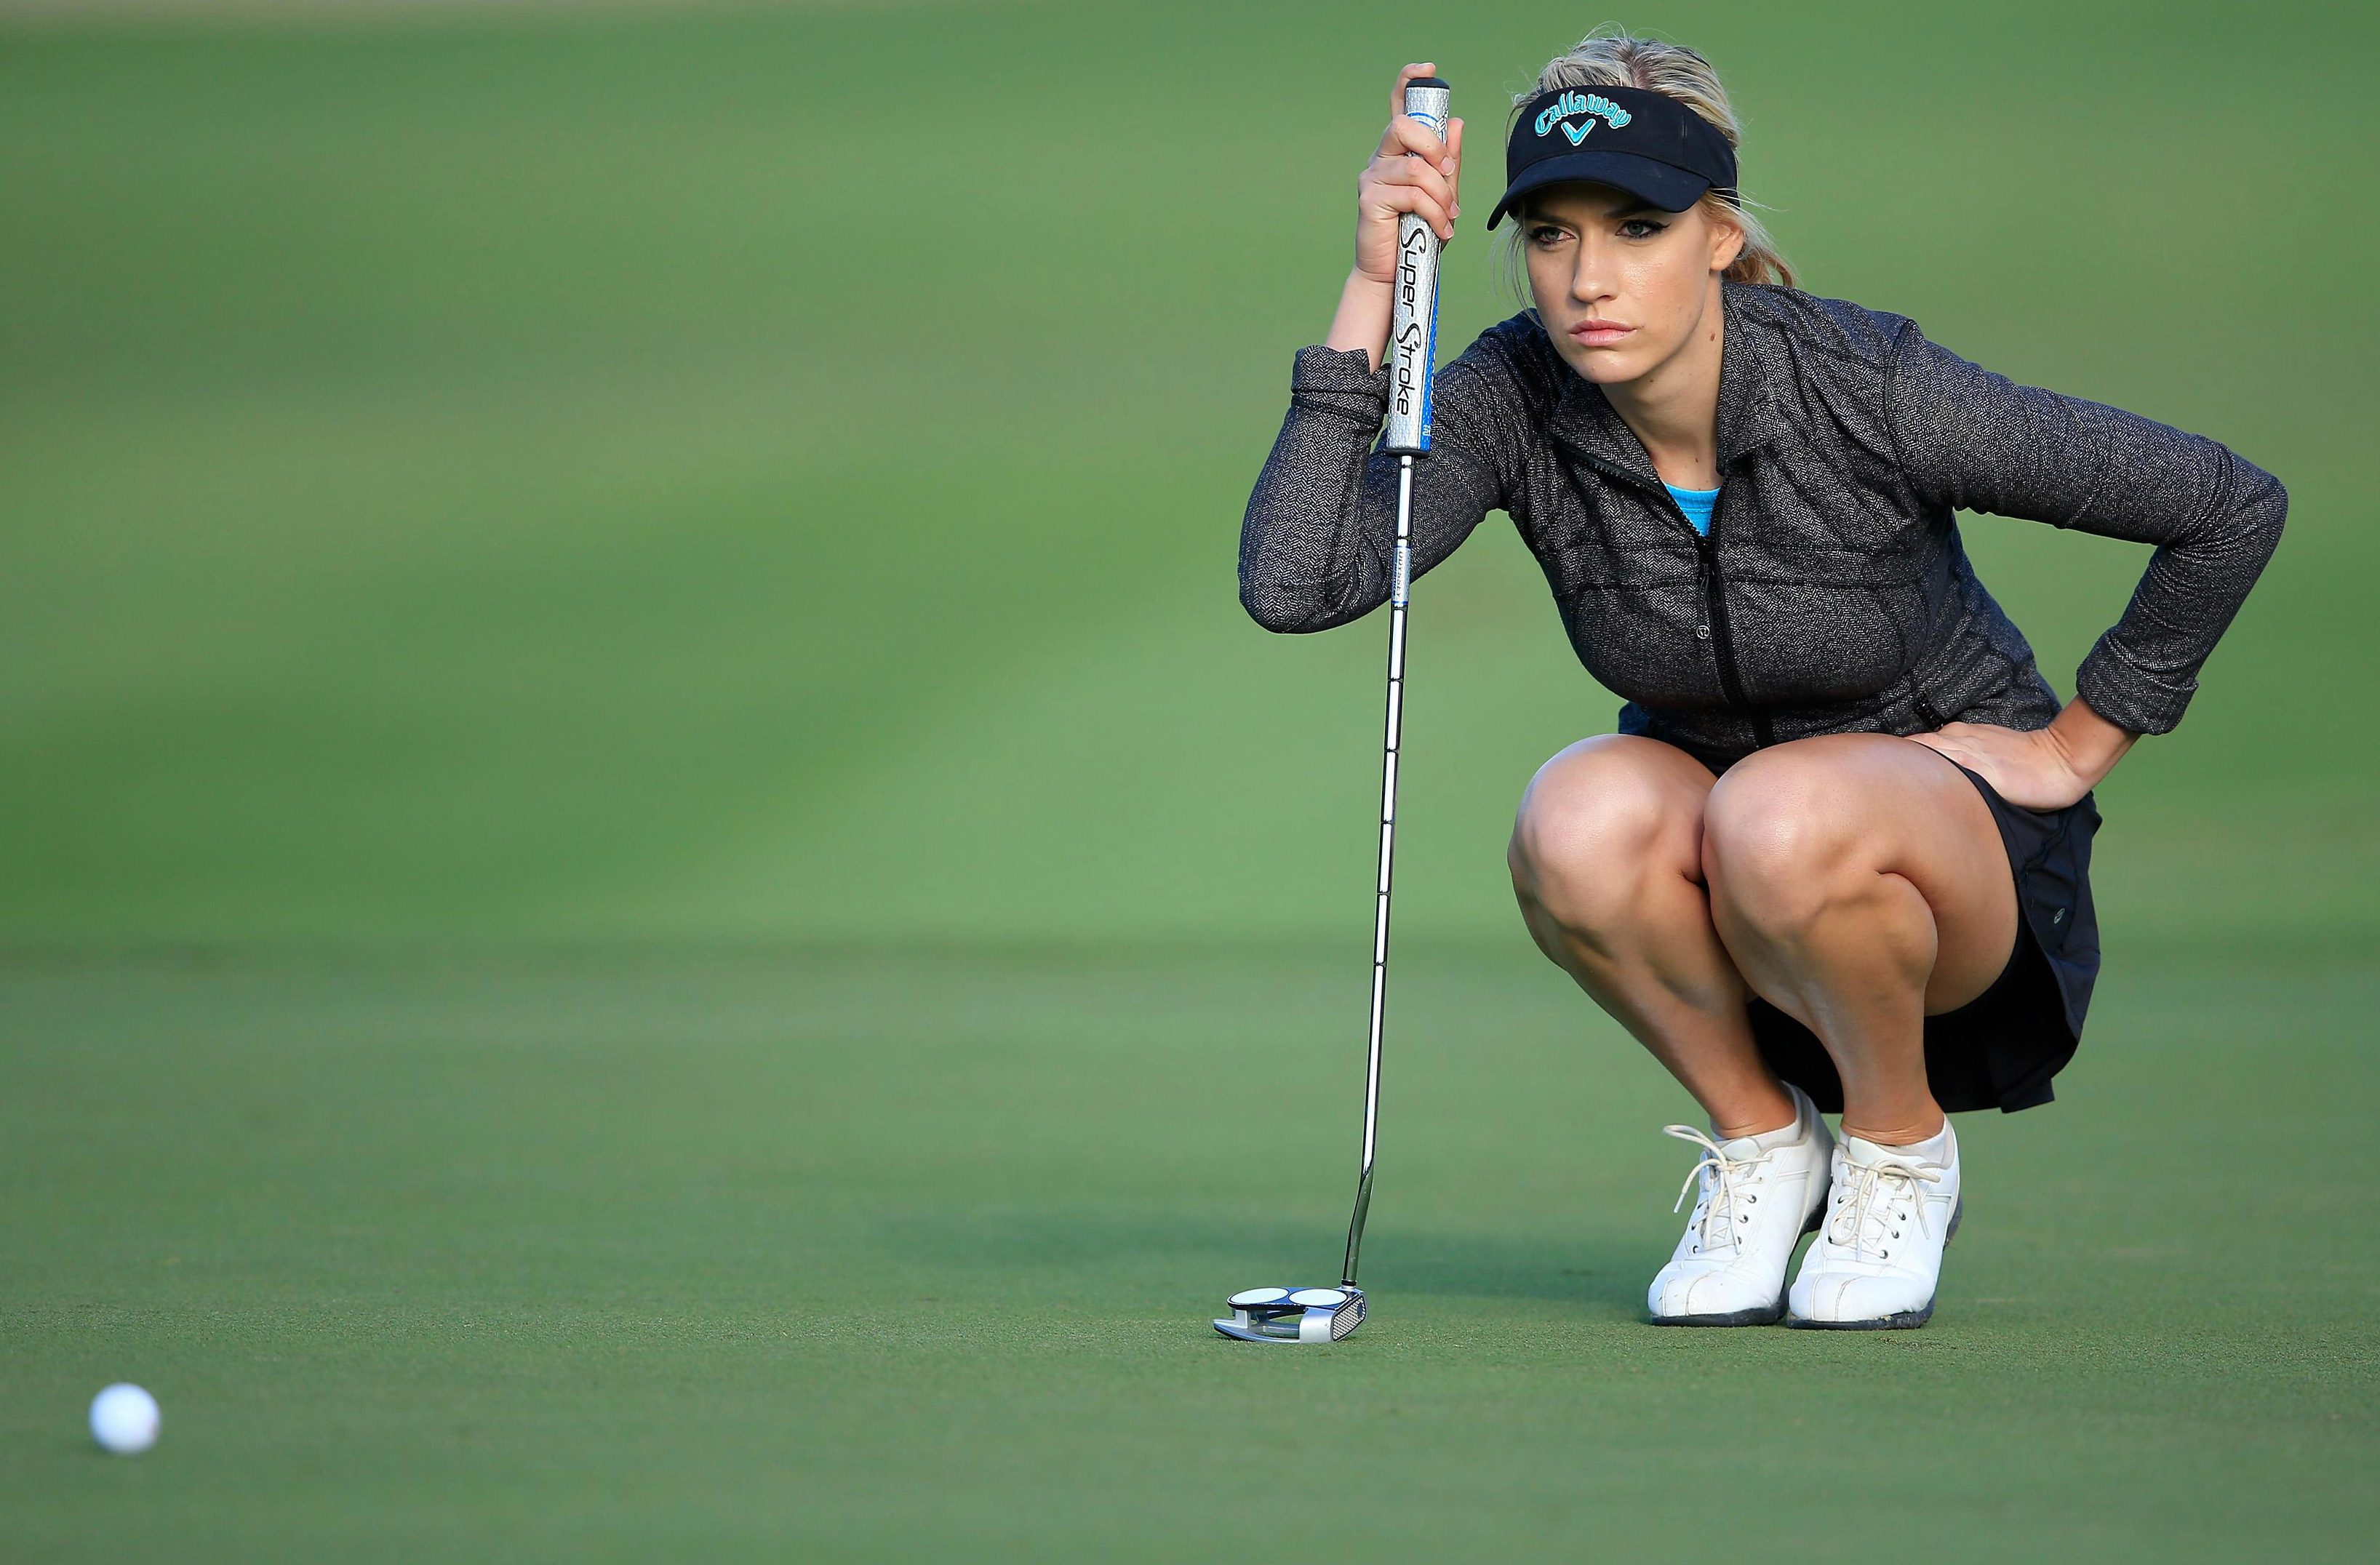 Paige Spiranac has hit back at what she says is unfair treatment in a sport dominated by middle-aged men